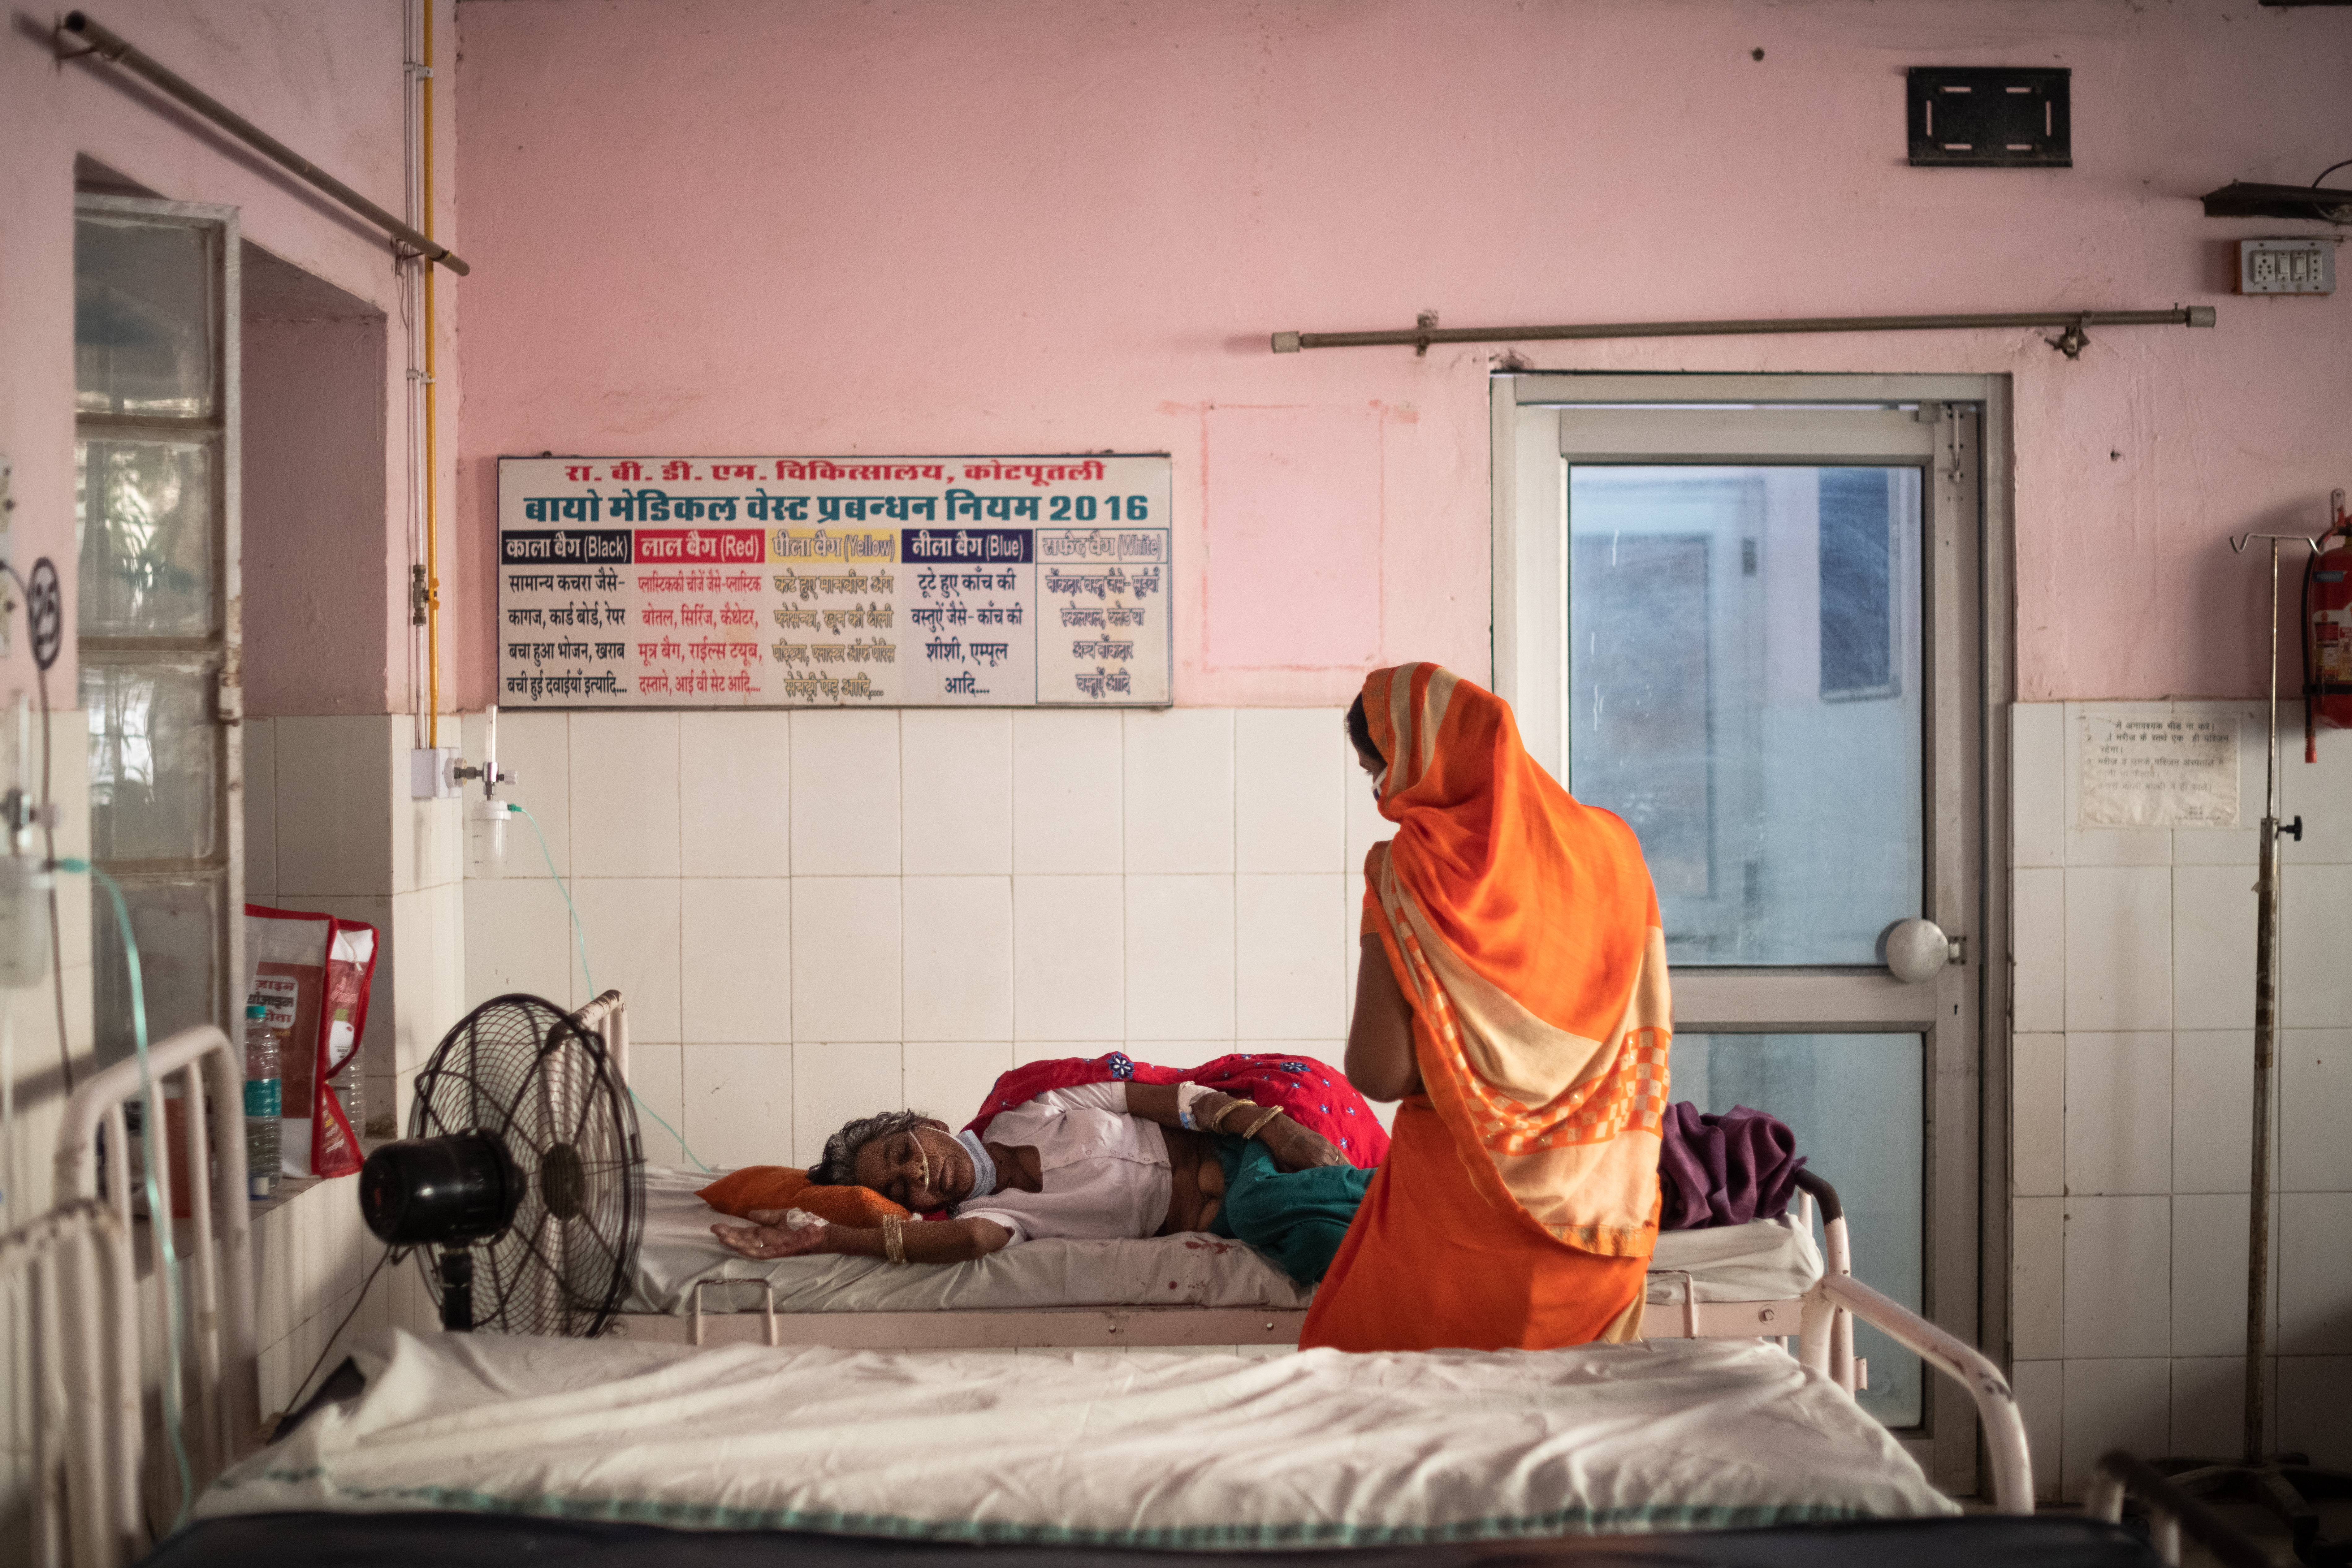 A visitor wearing a sari sits on a bed beside a patient receiving oxygen at a hospital in India.